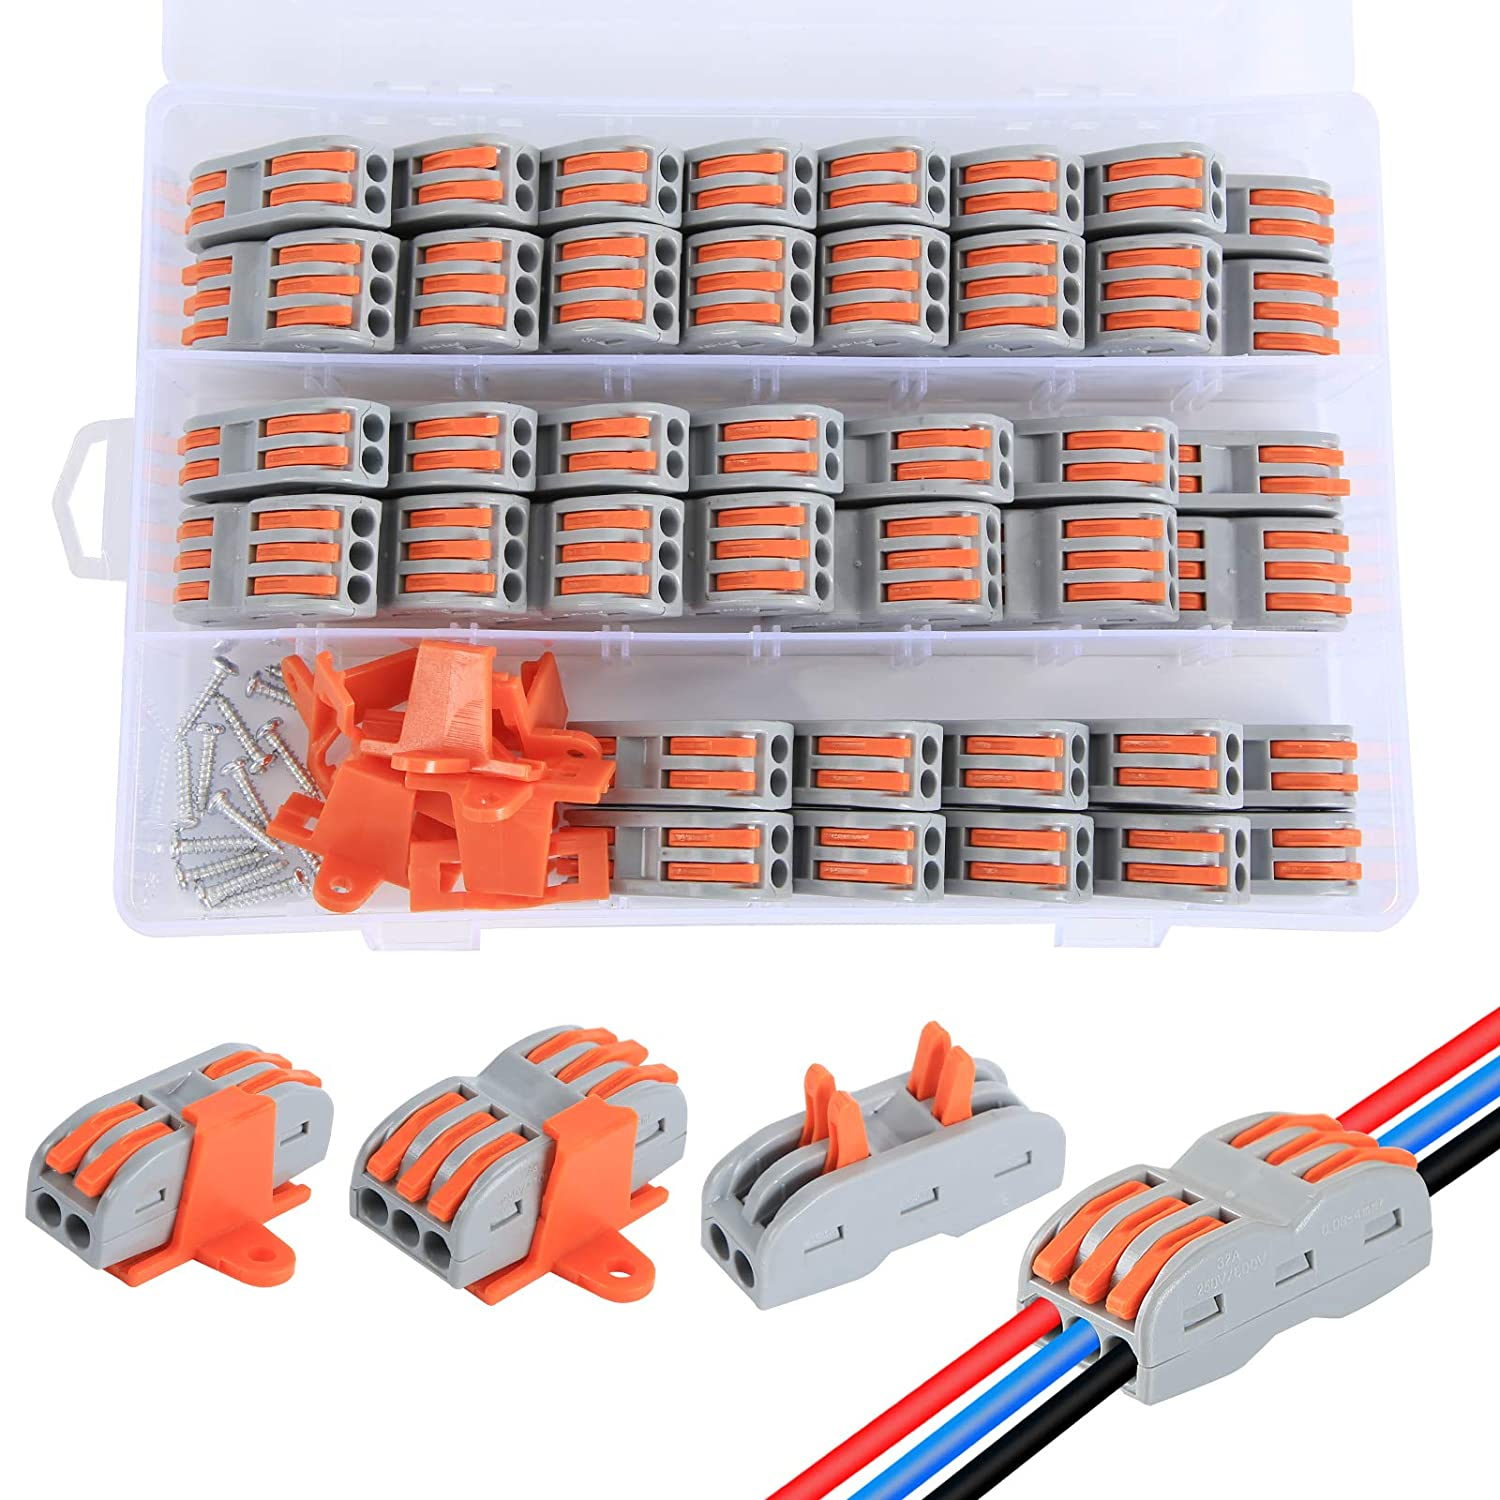 70pcs Compact NEW before selling ☆ Wire Conductor Connector,Aigreat National uniform free shipping C Assortment